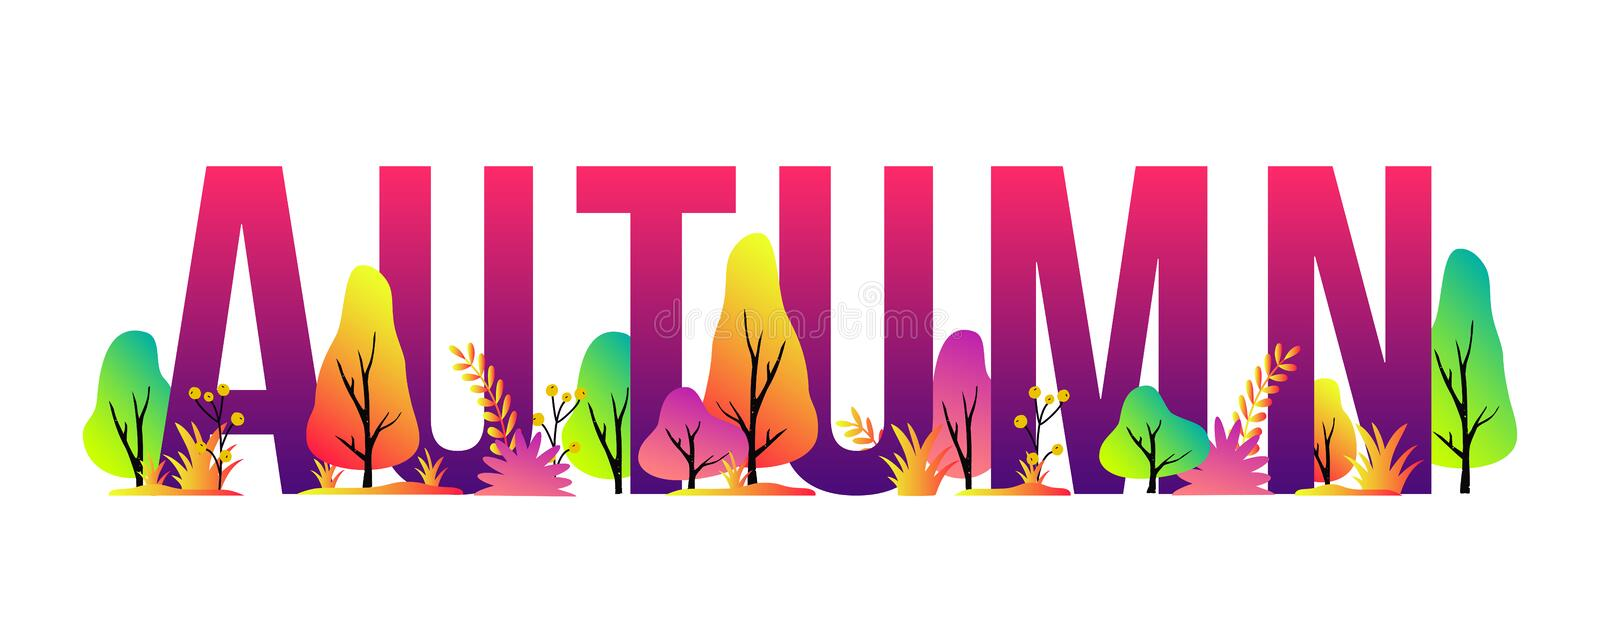 Vector trendy autumn illustration with  letters, trees and plants. Modern seasonal background for banner, poster vector illustration